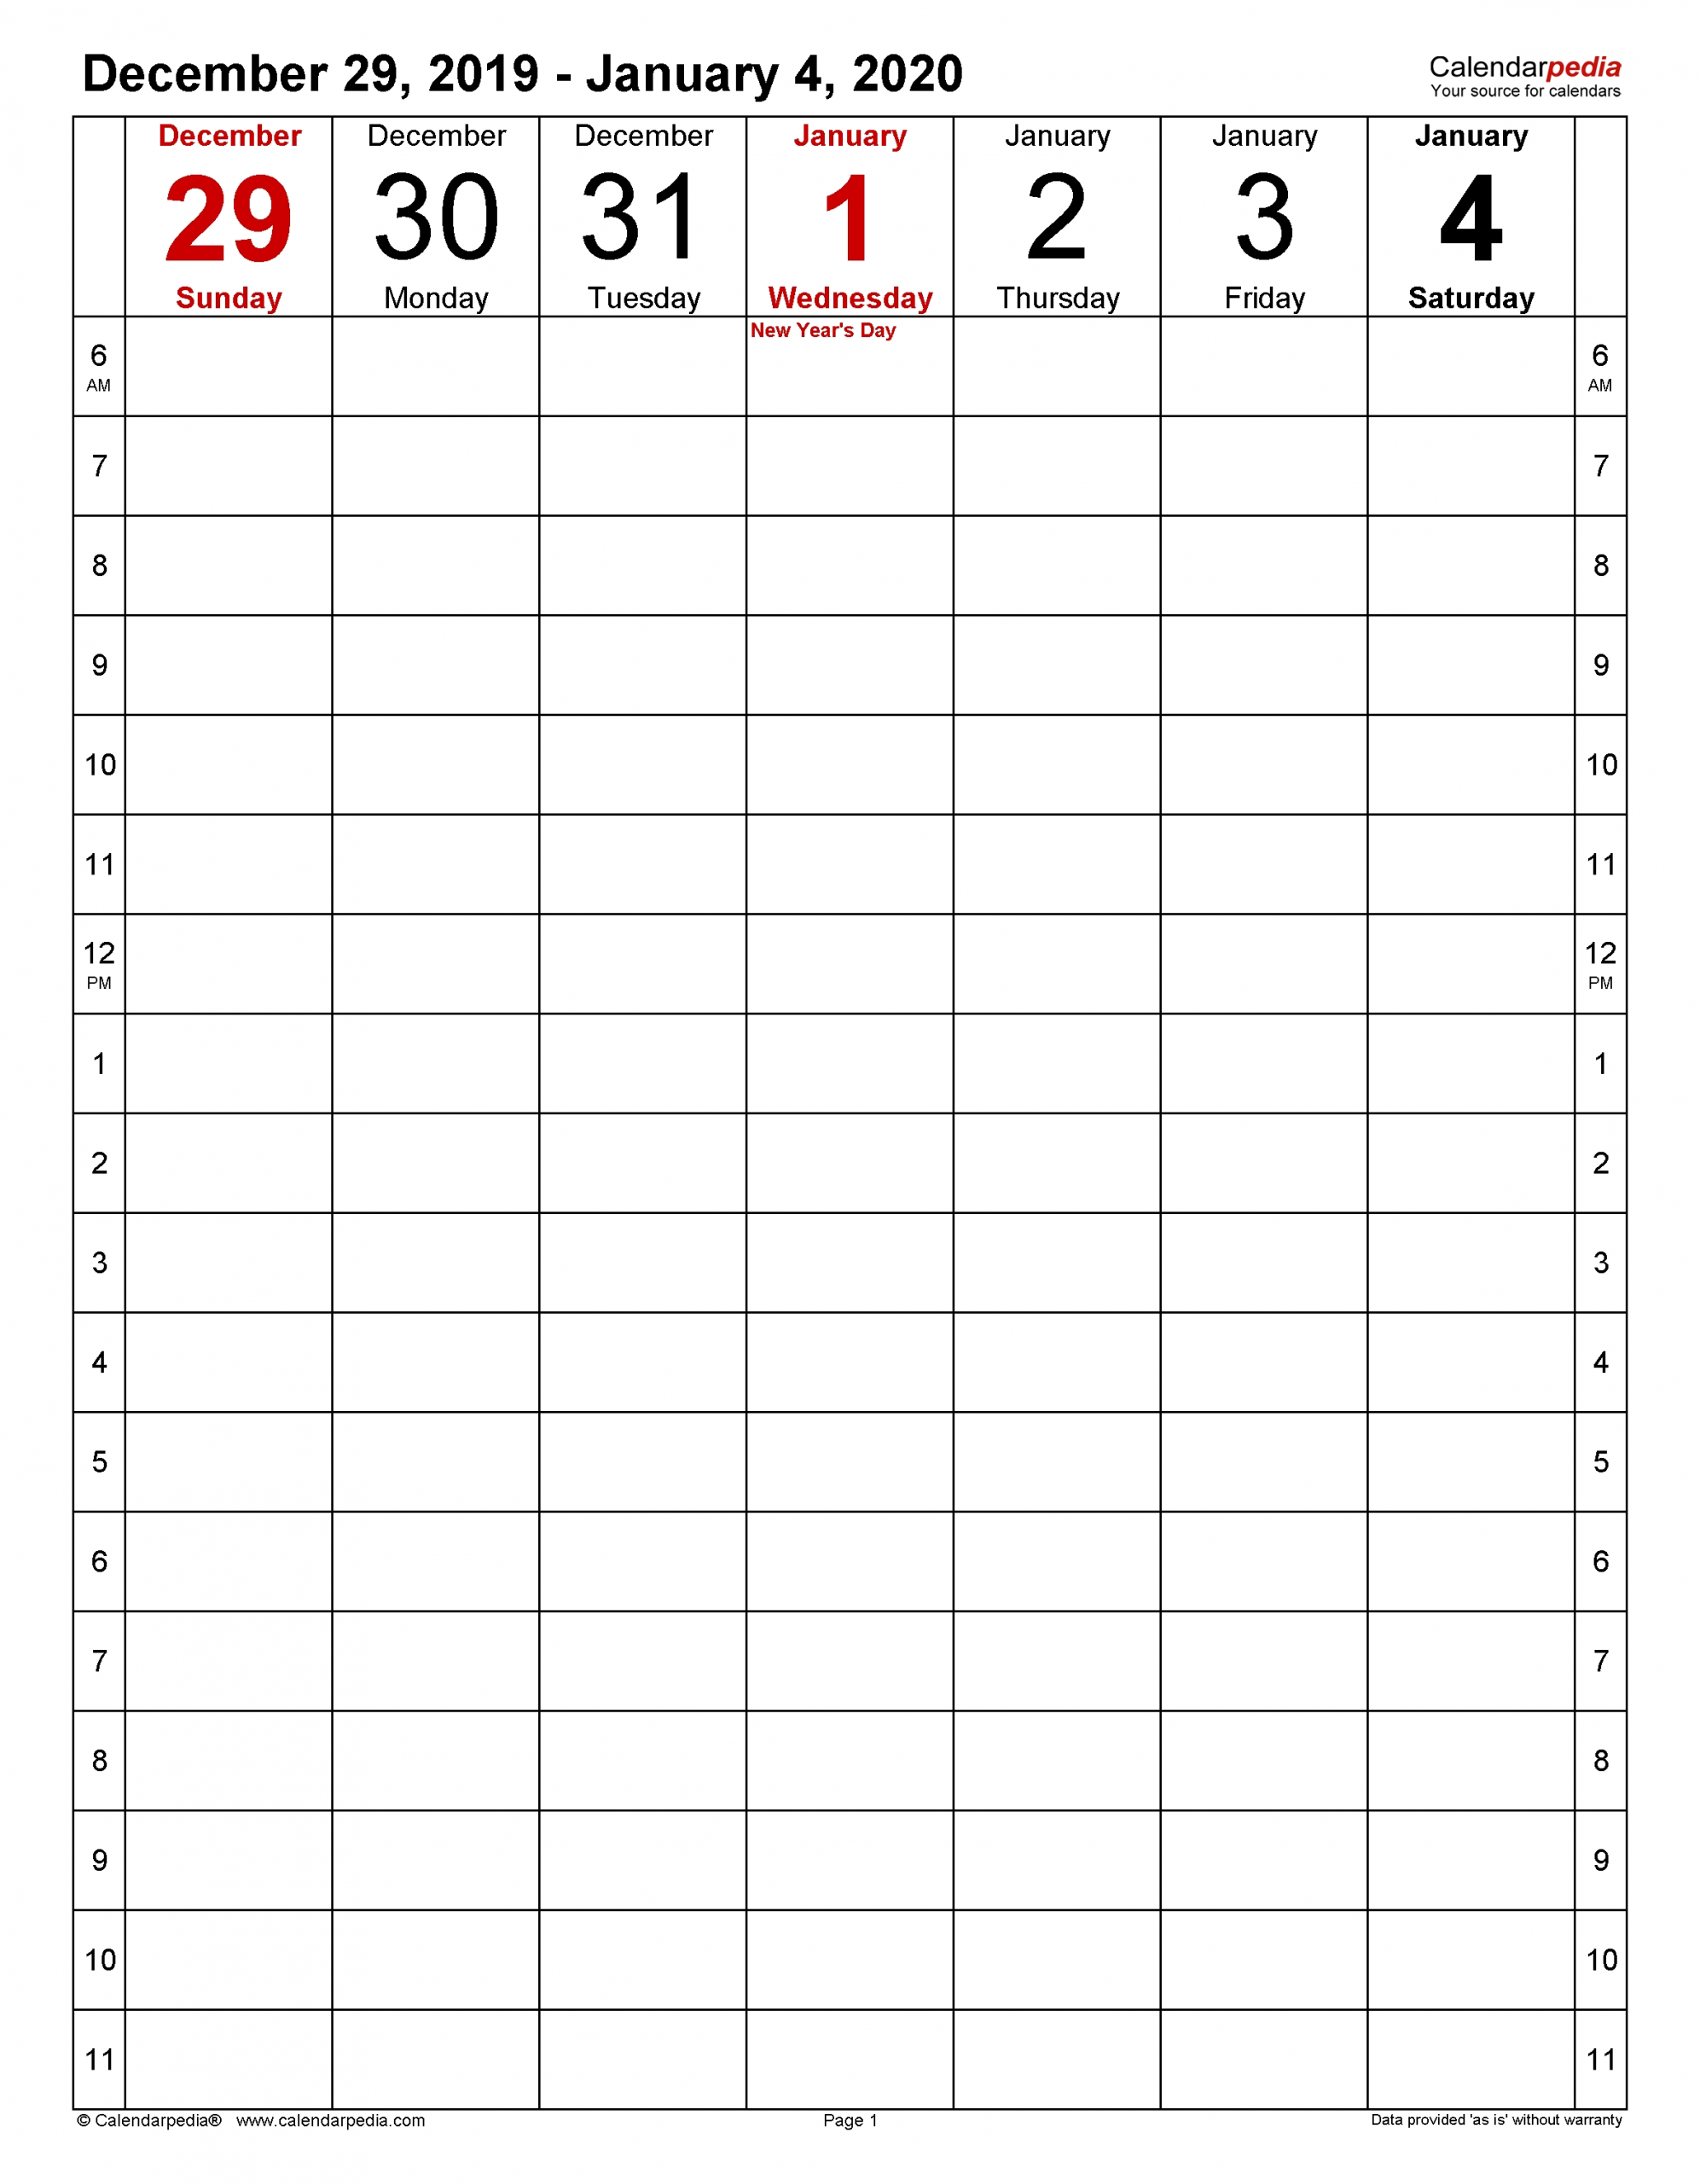 Weekly Calendars 2020 For Excel - 12 Free Printable Templates